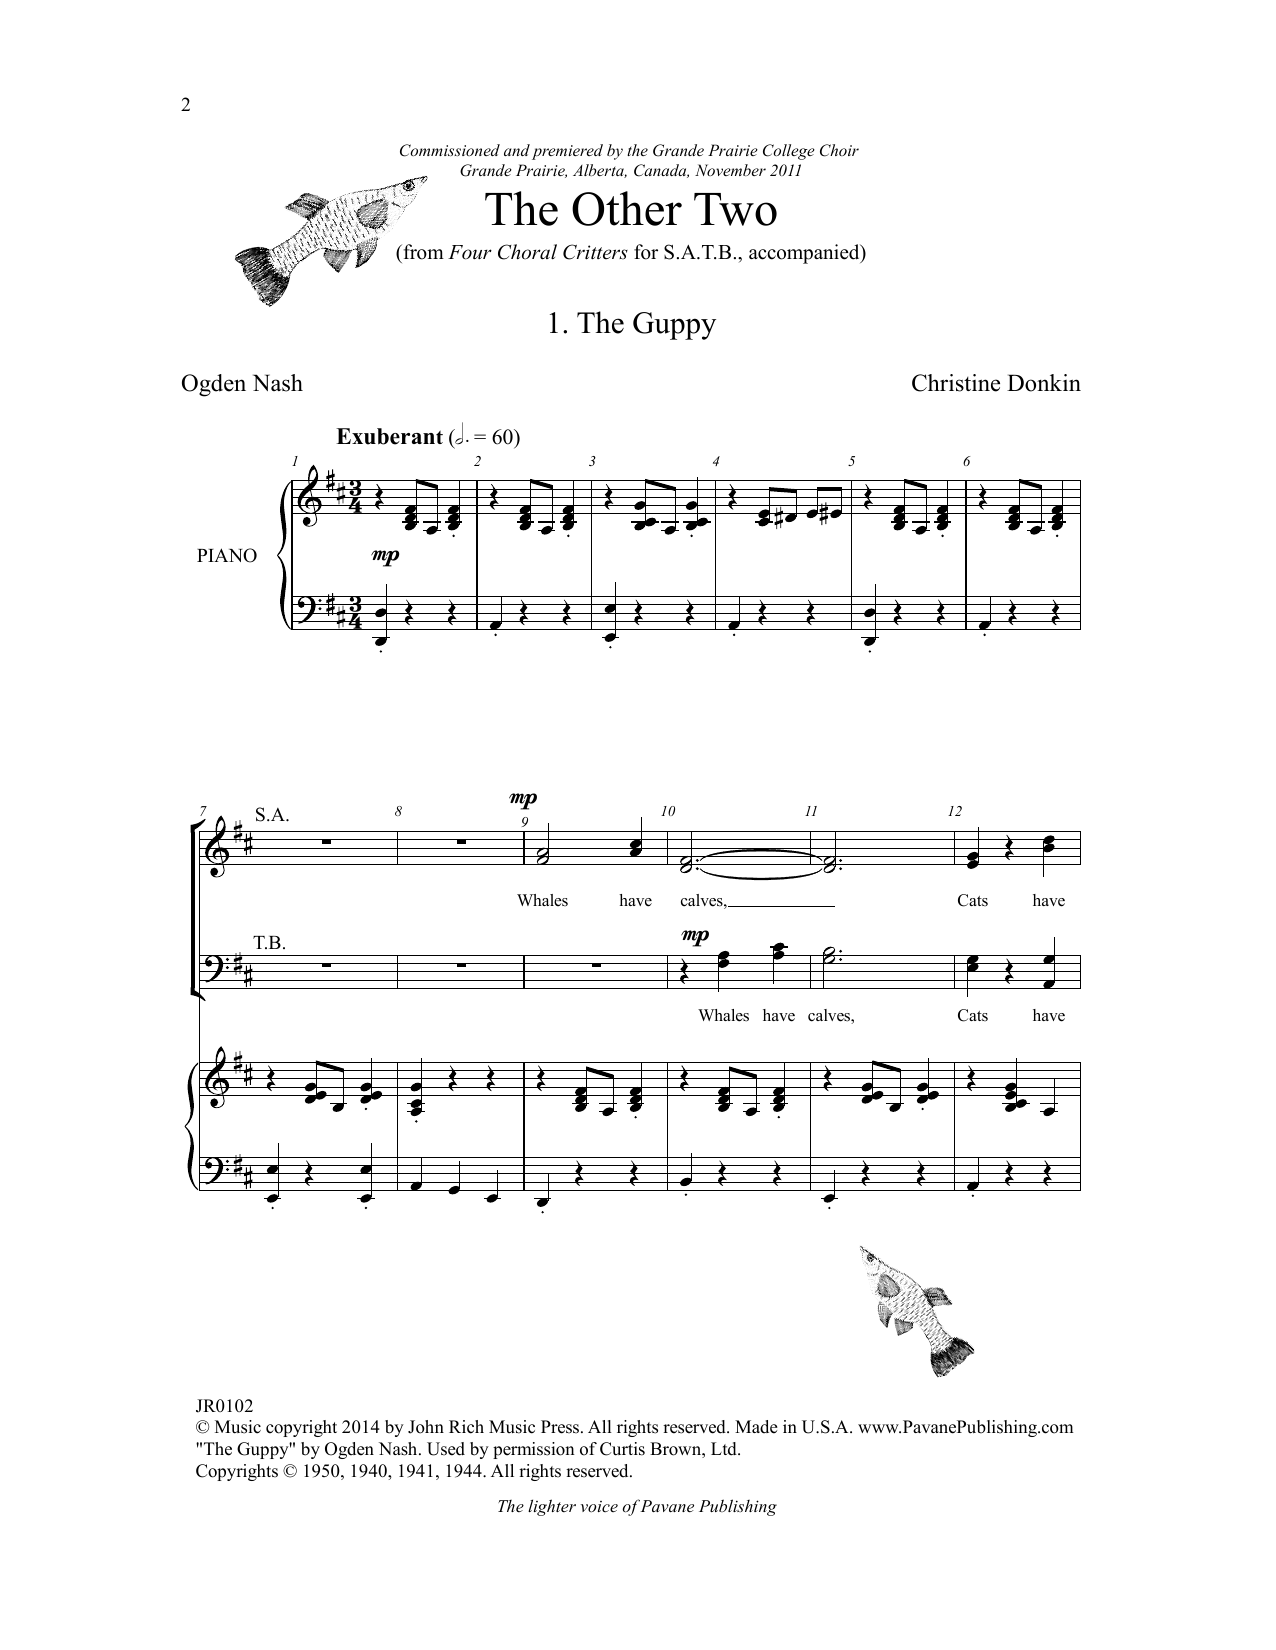 Four Choral Critters - The Other Two Sheet Music